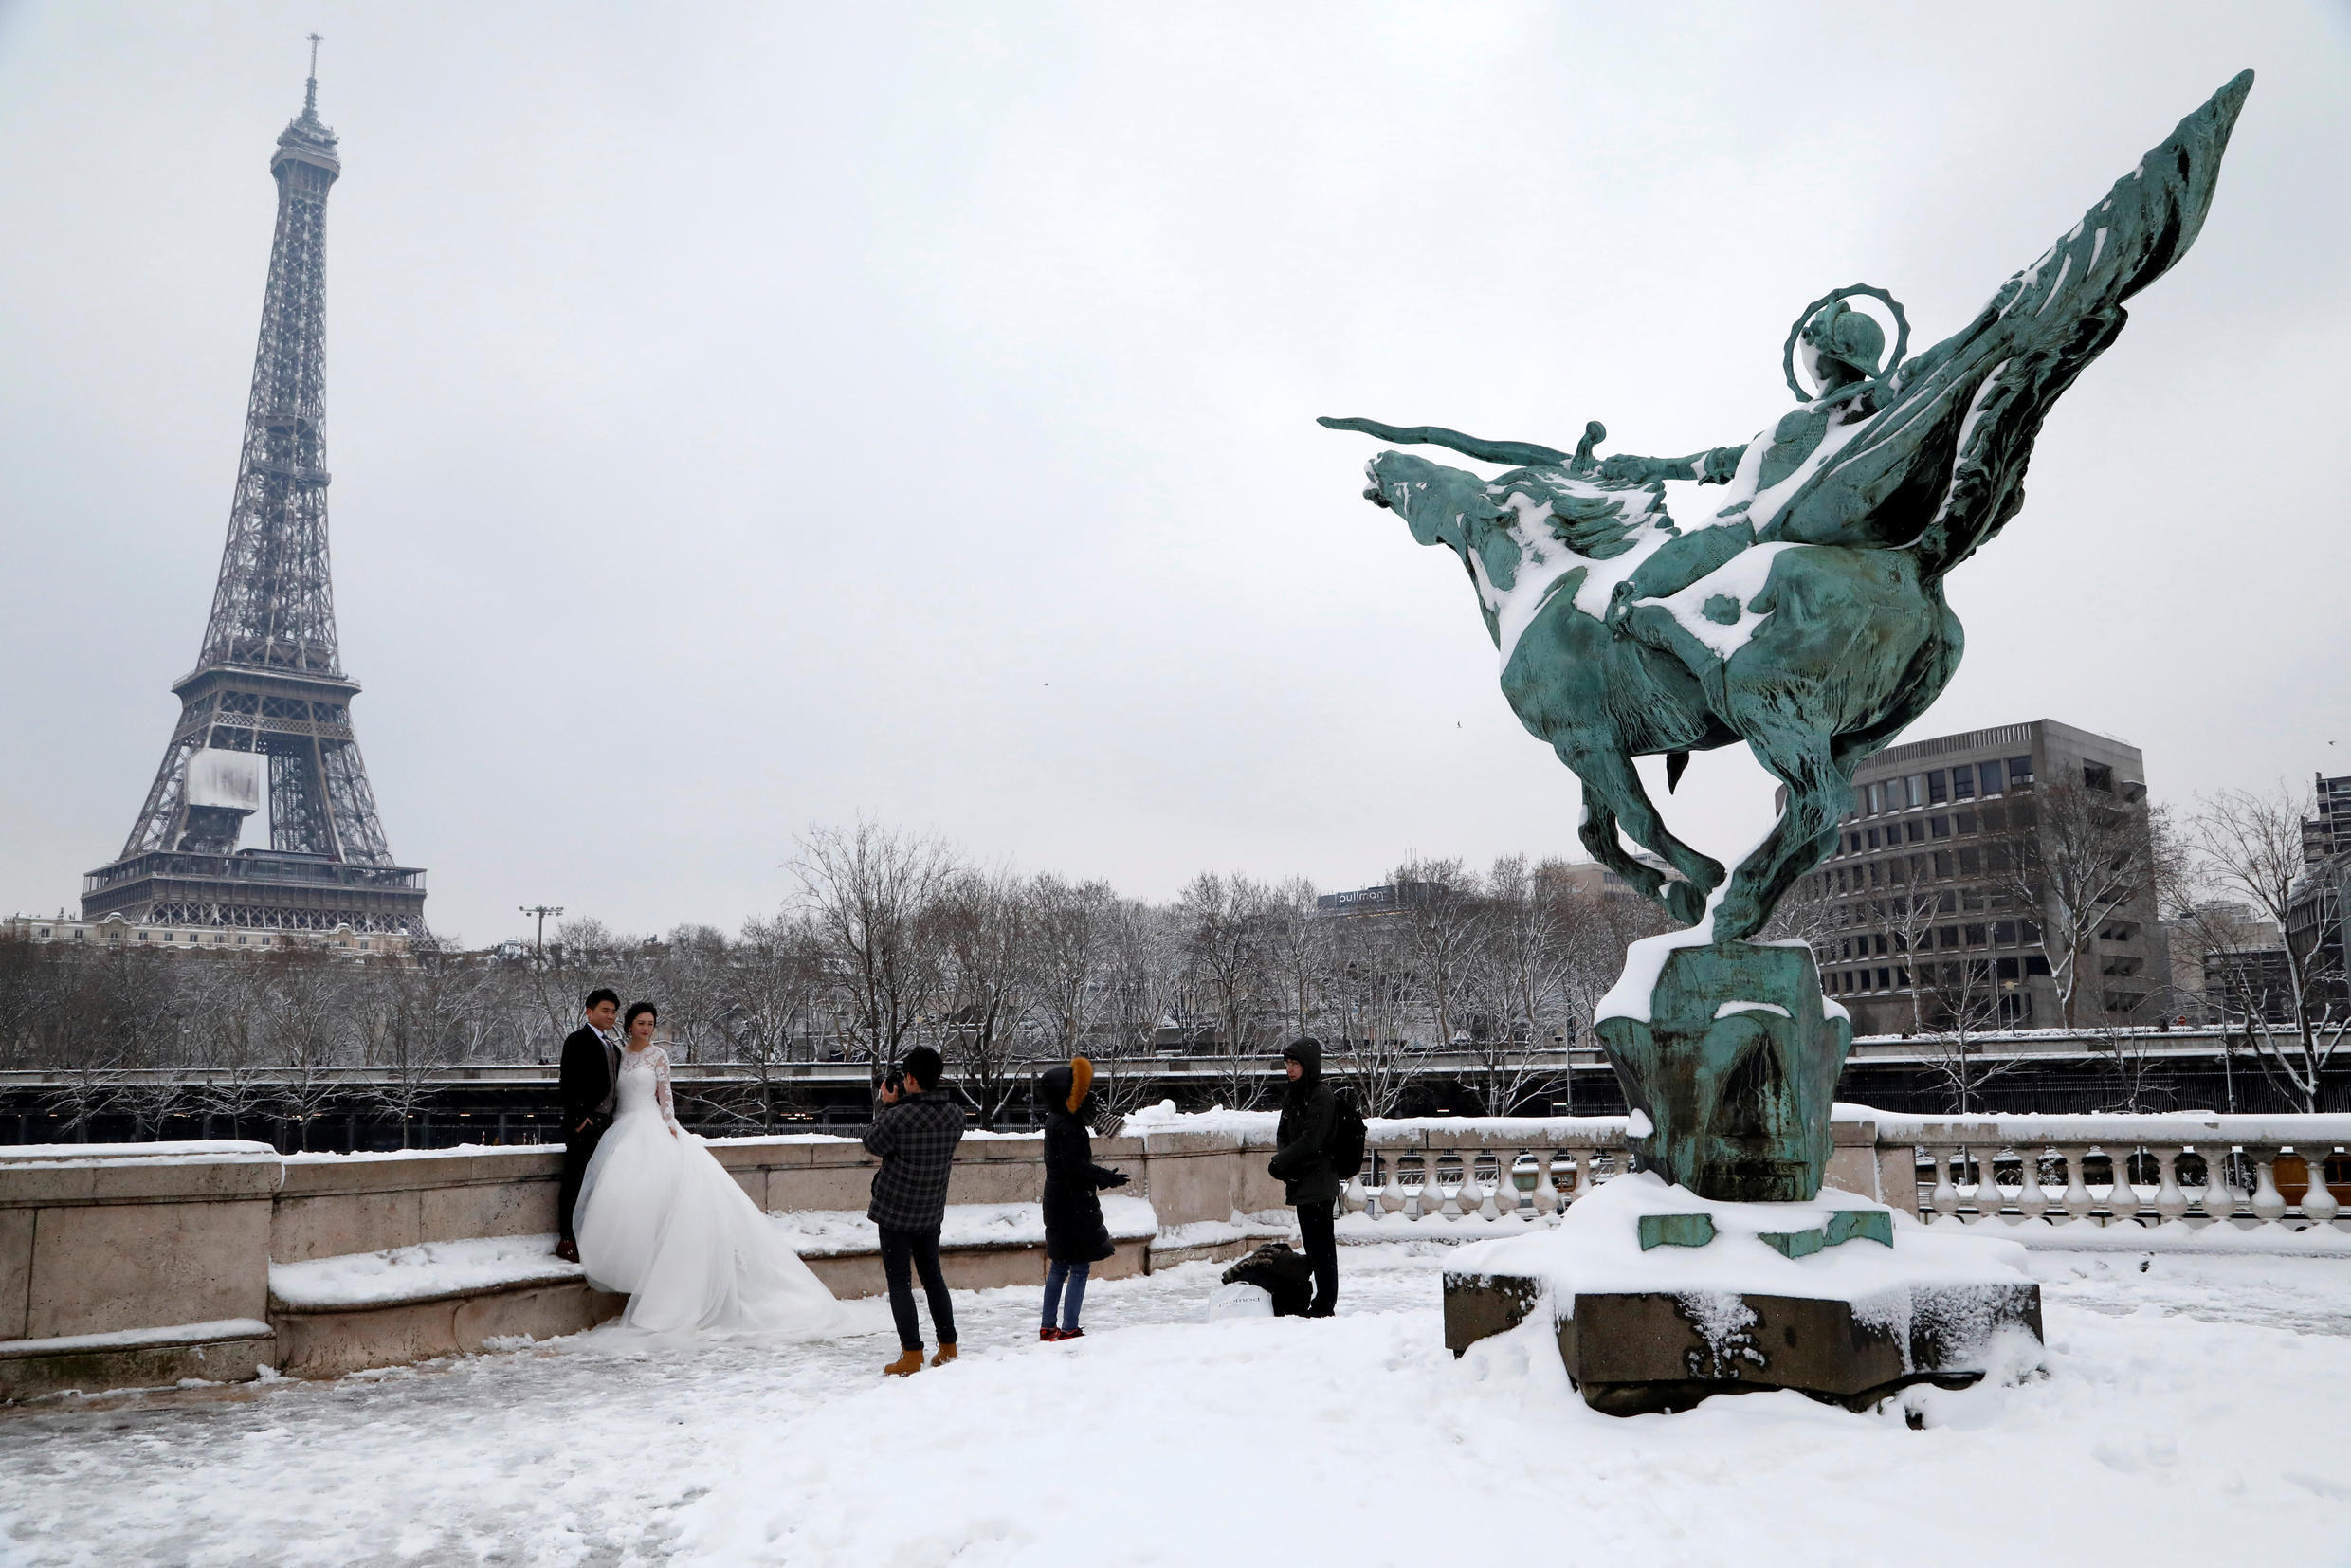 Newly weds pose in the snow in front of the Eiffel Tower